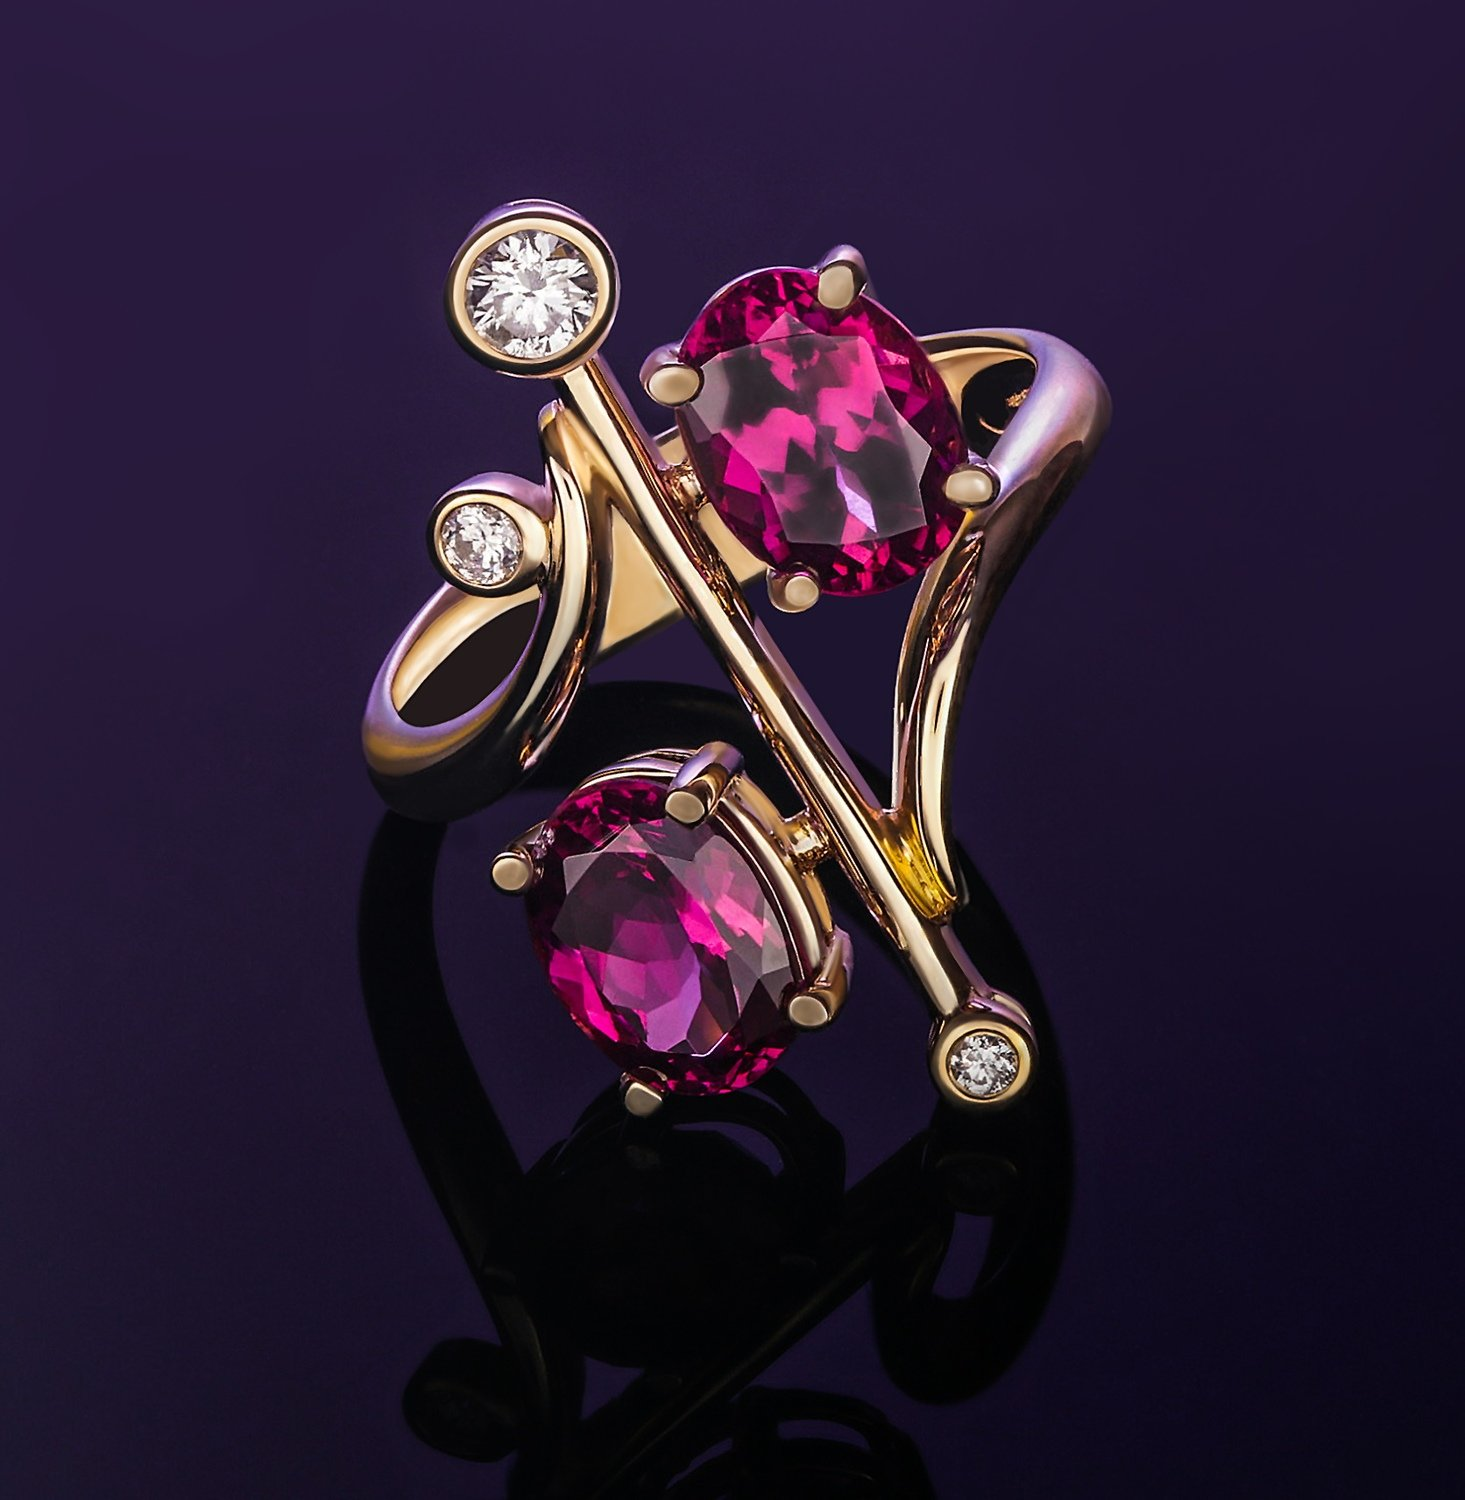 Genuine Raspberry Garnet Double Solitaire with Diamonds 14k Solid Yellow Gold Ring - One-of-a-kind!